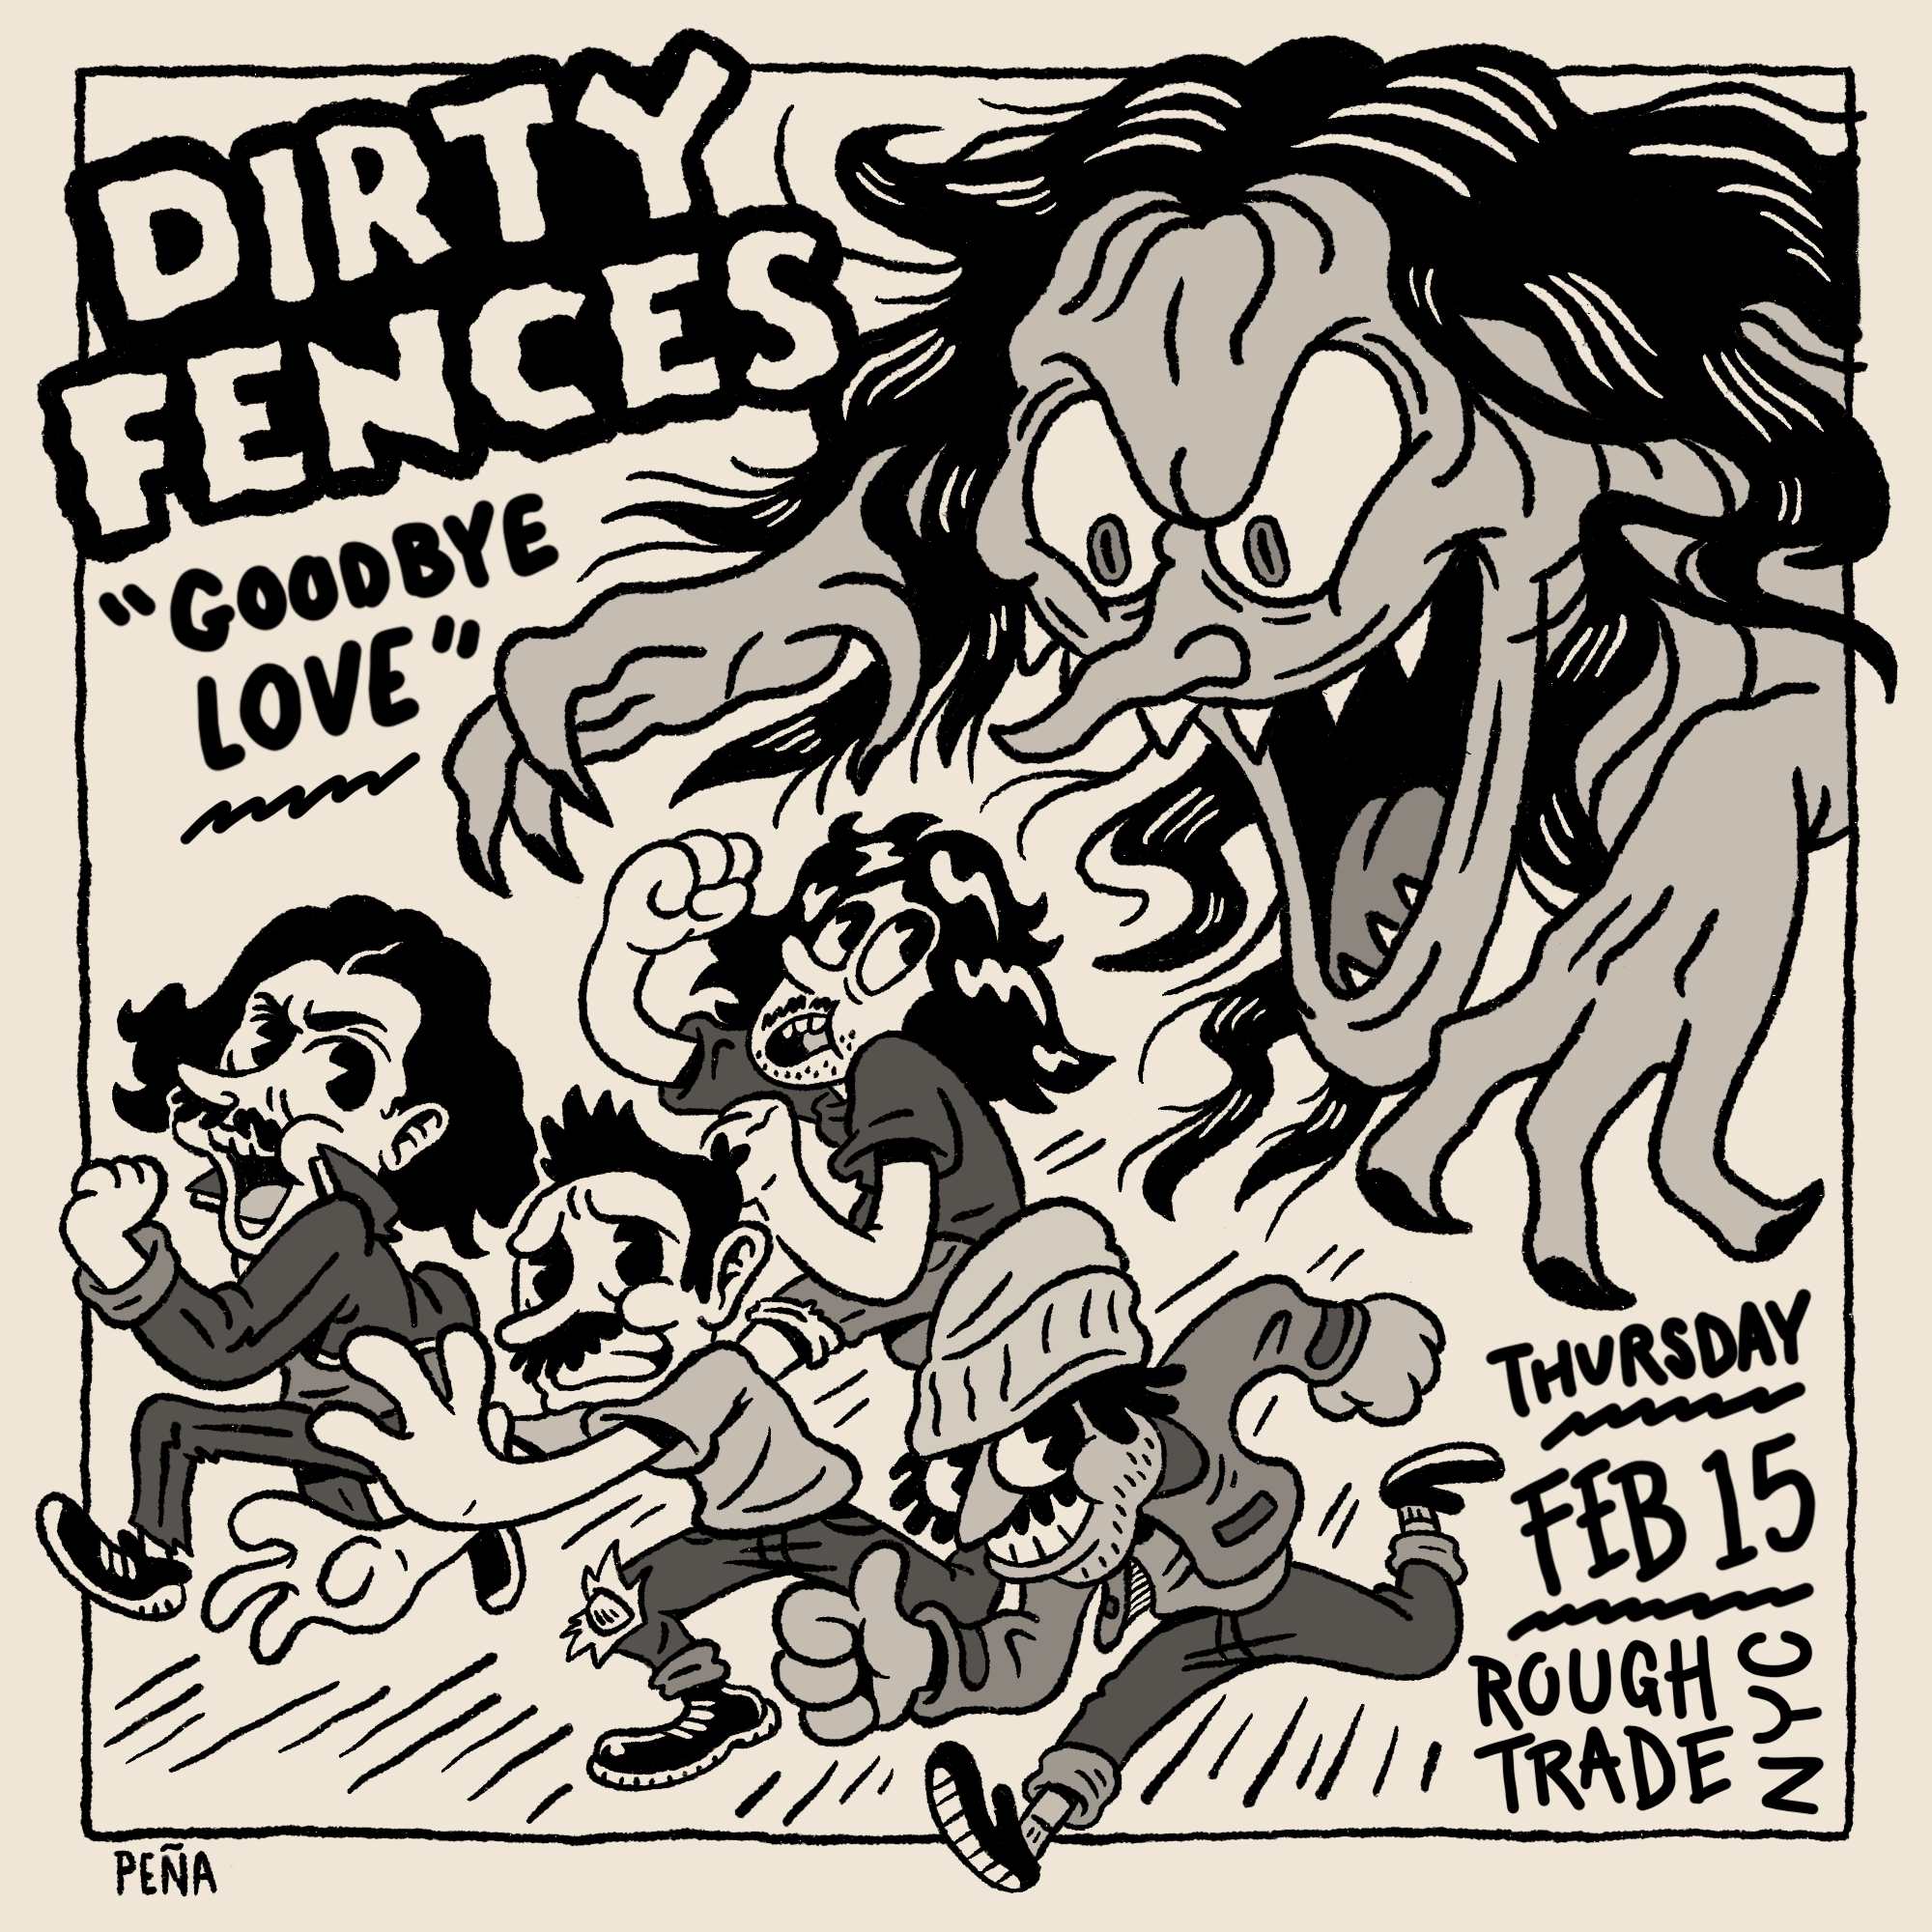 Dirty Fences Flyer